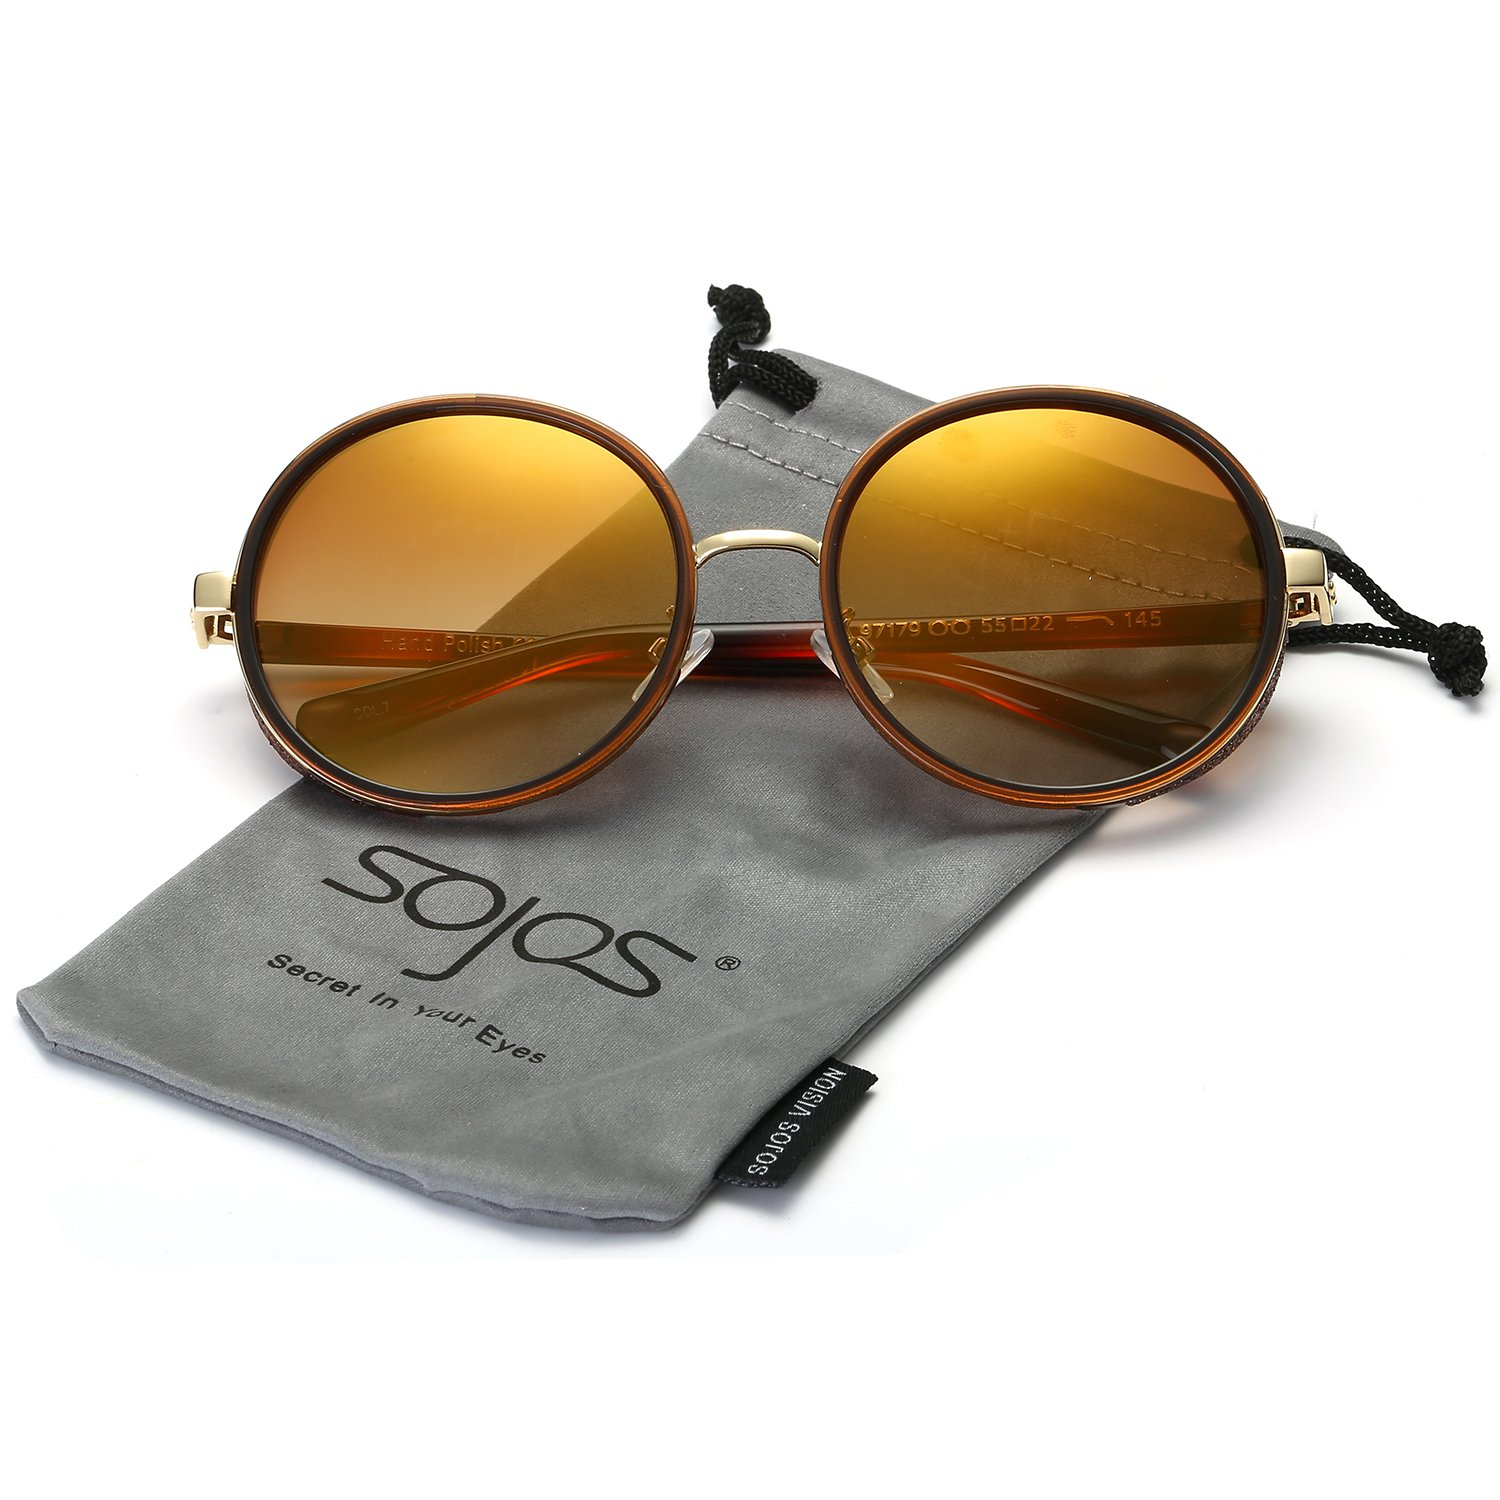 SojoS Retro Gothic Steampunk Round Mirrored Blingbling Classsic Women Sunglasses SJ2022 (C04 Brown Frame/Yellow Lens, 56) by SOJOS